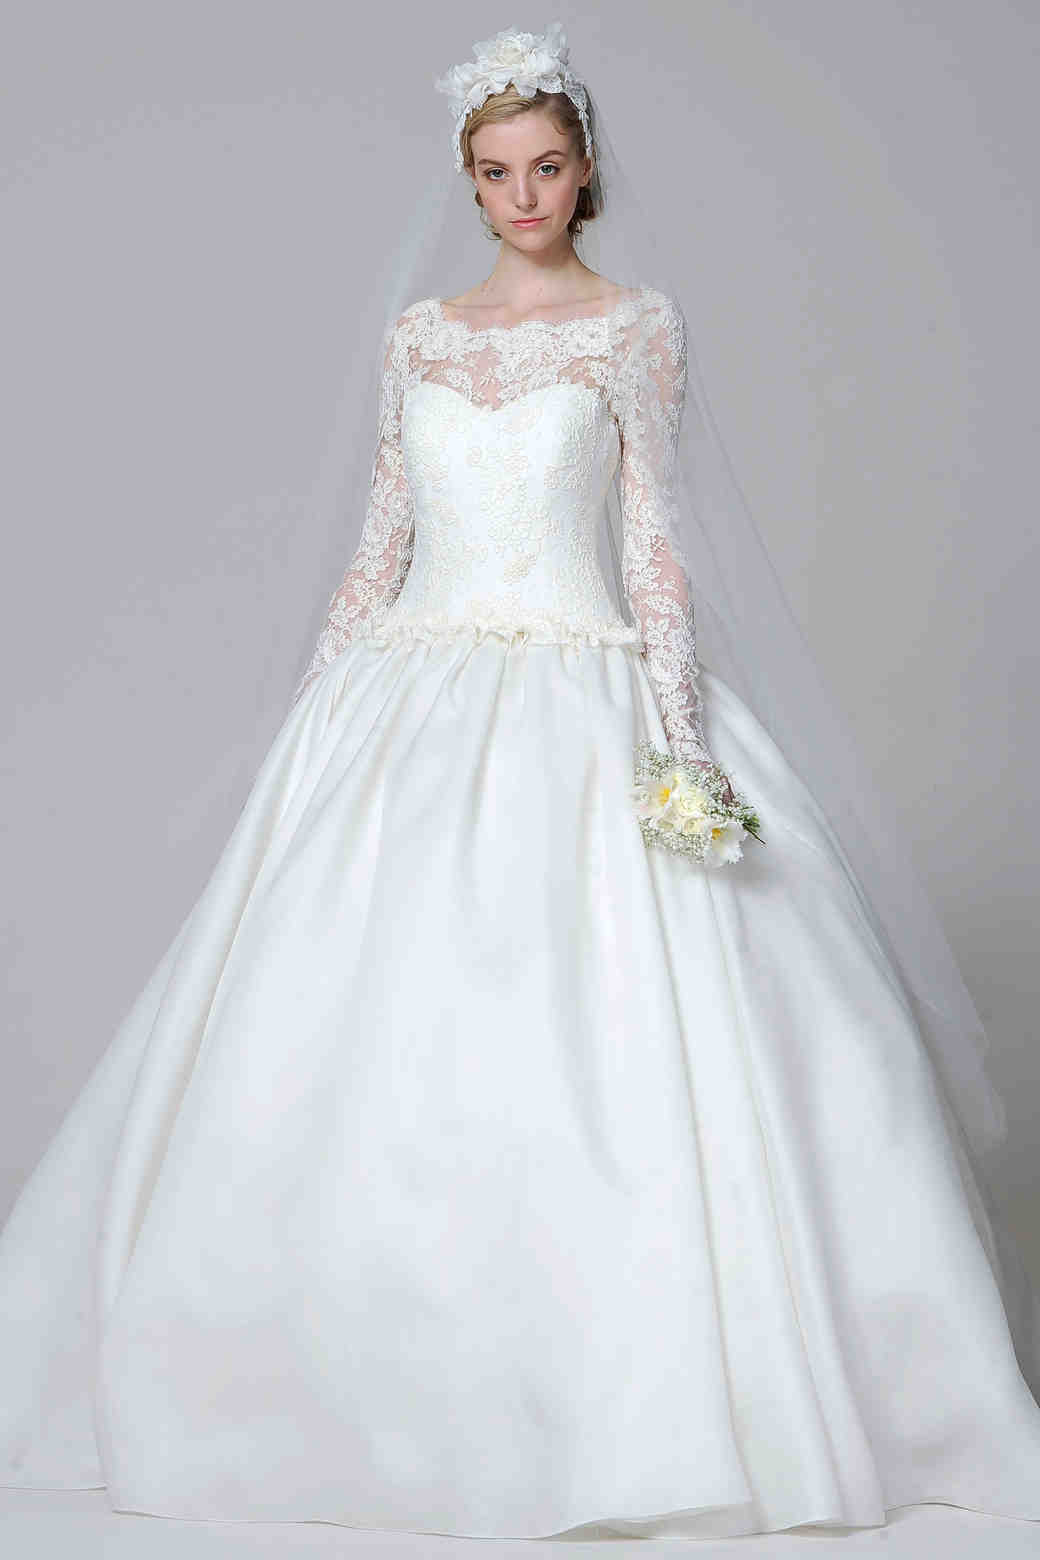 Long Sleeve Wedding Dresses, Spring 2013 Bridal Fashion